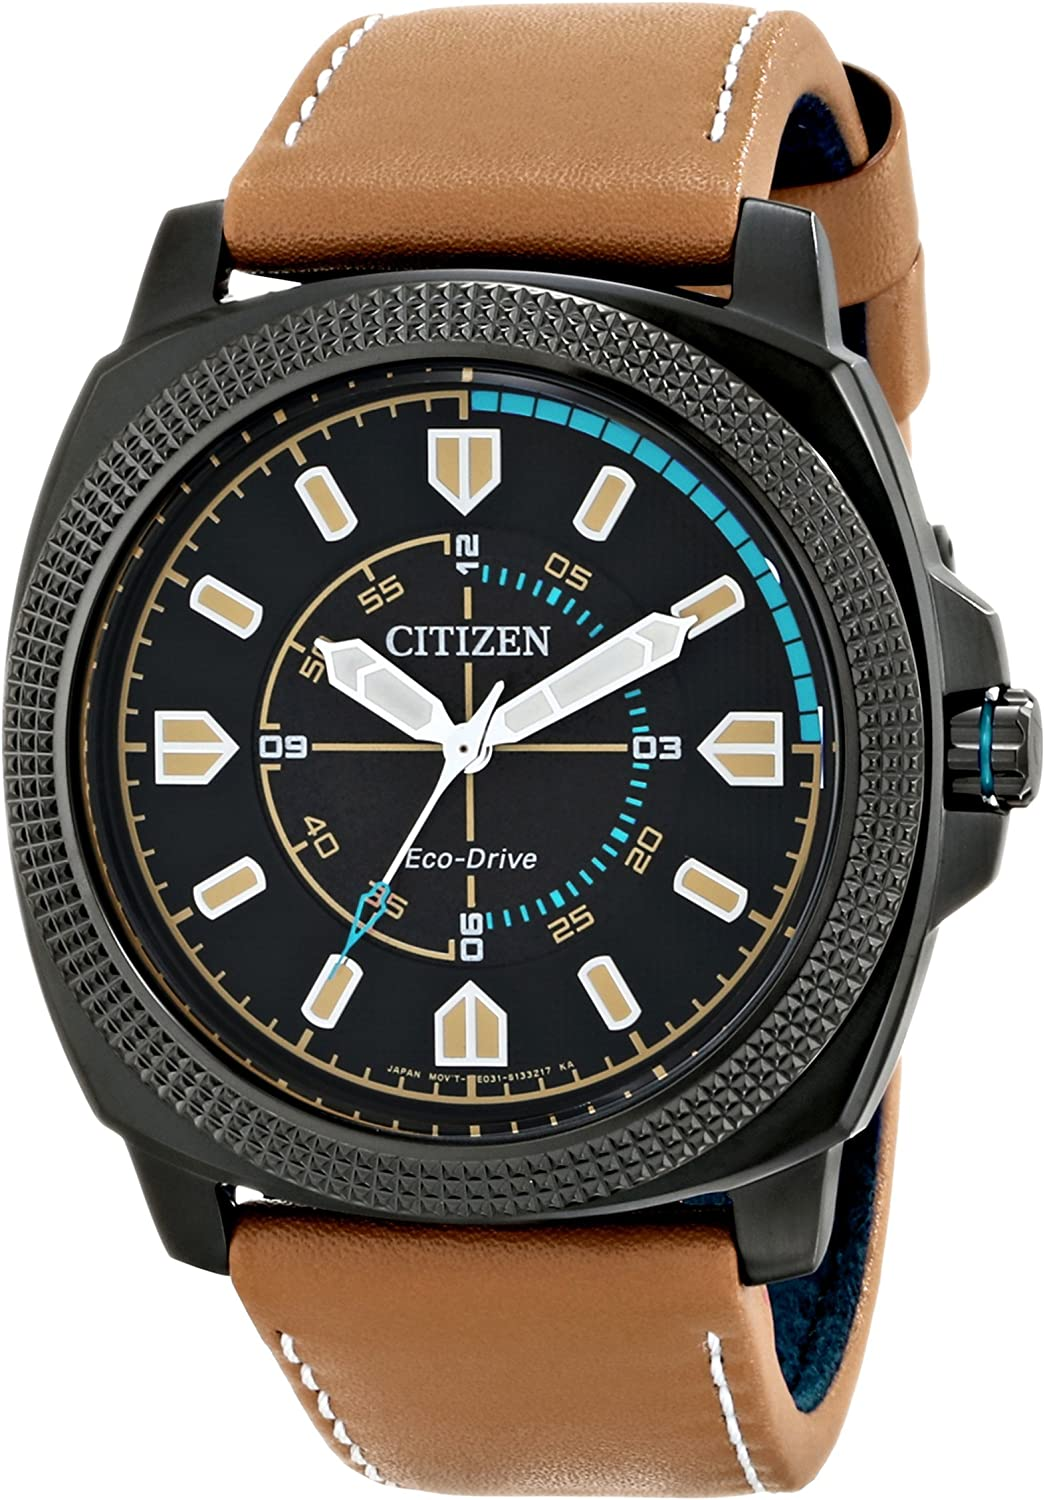 Citizen Men s BJ6475-00E Drive from Citizen Stainless Steel Watch with Beige Leather Band